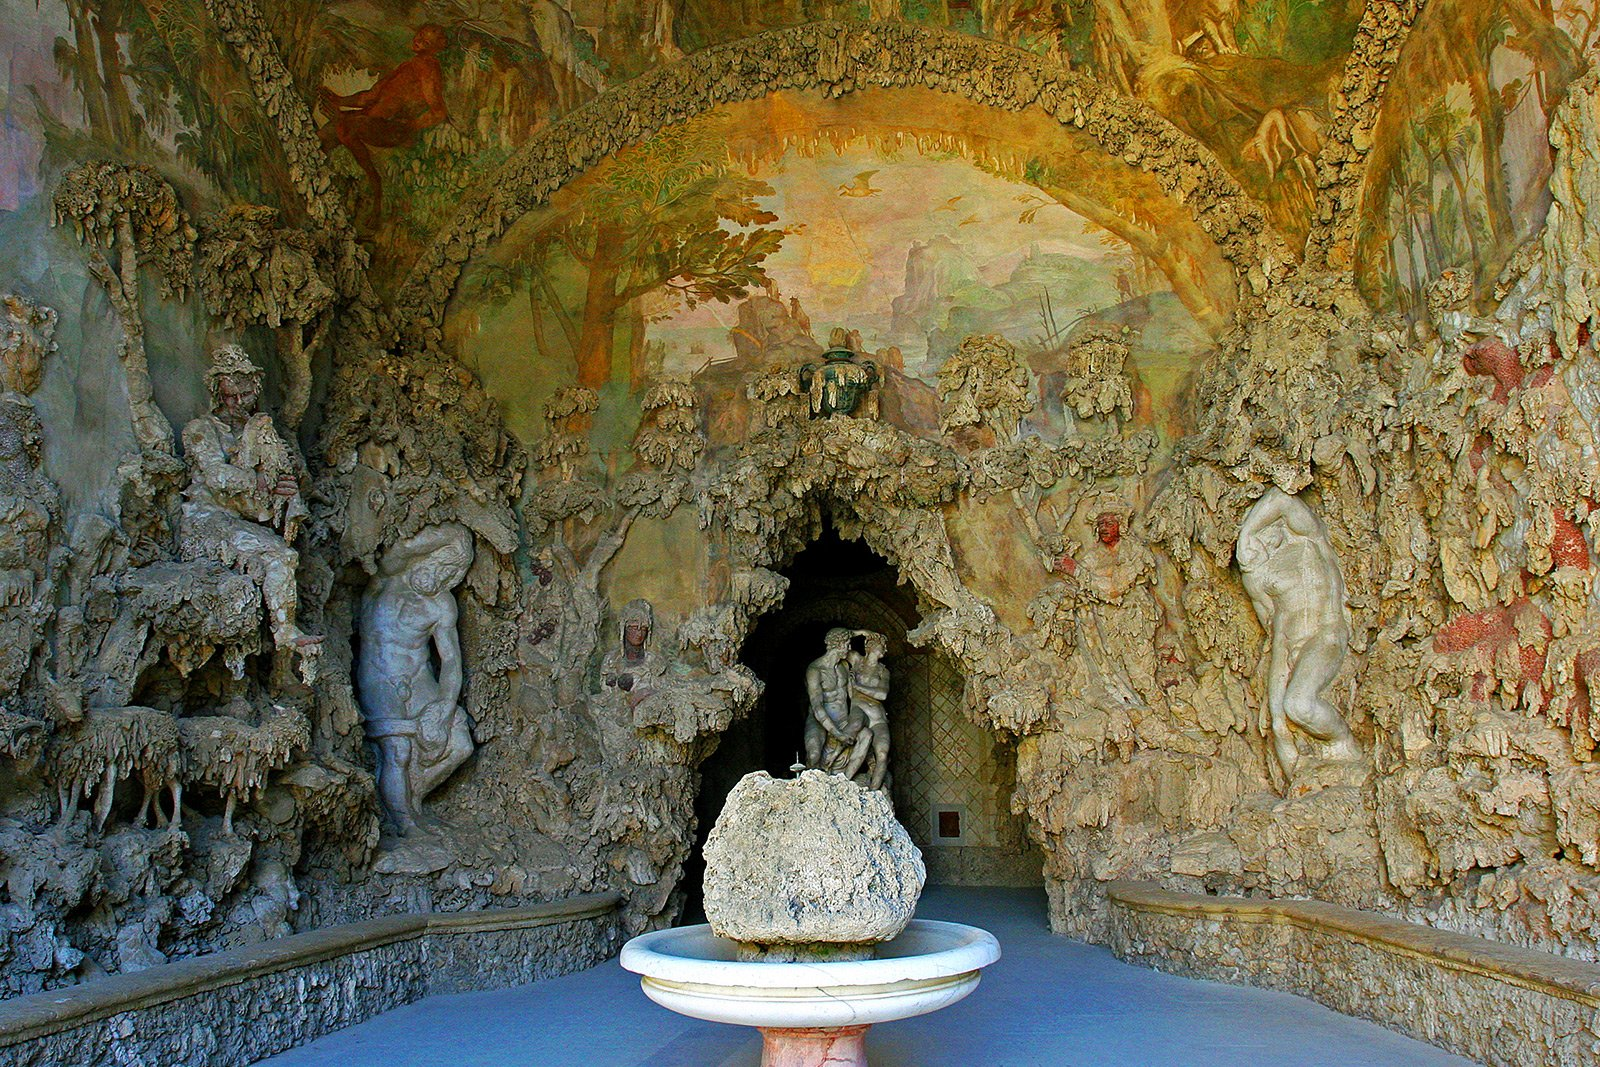 How to find the secret passage in the Buontalenti Grotto in Florence